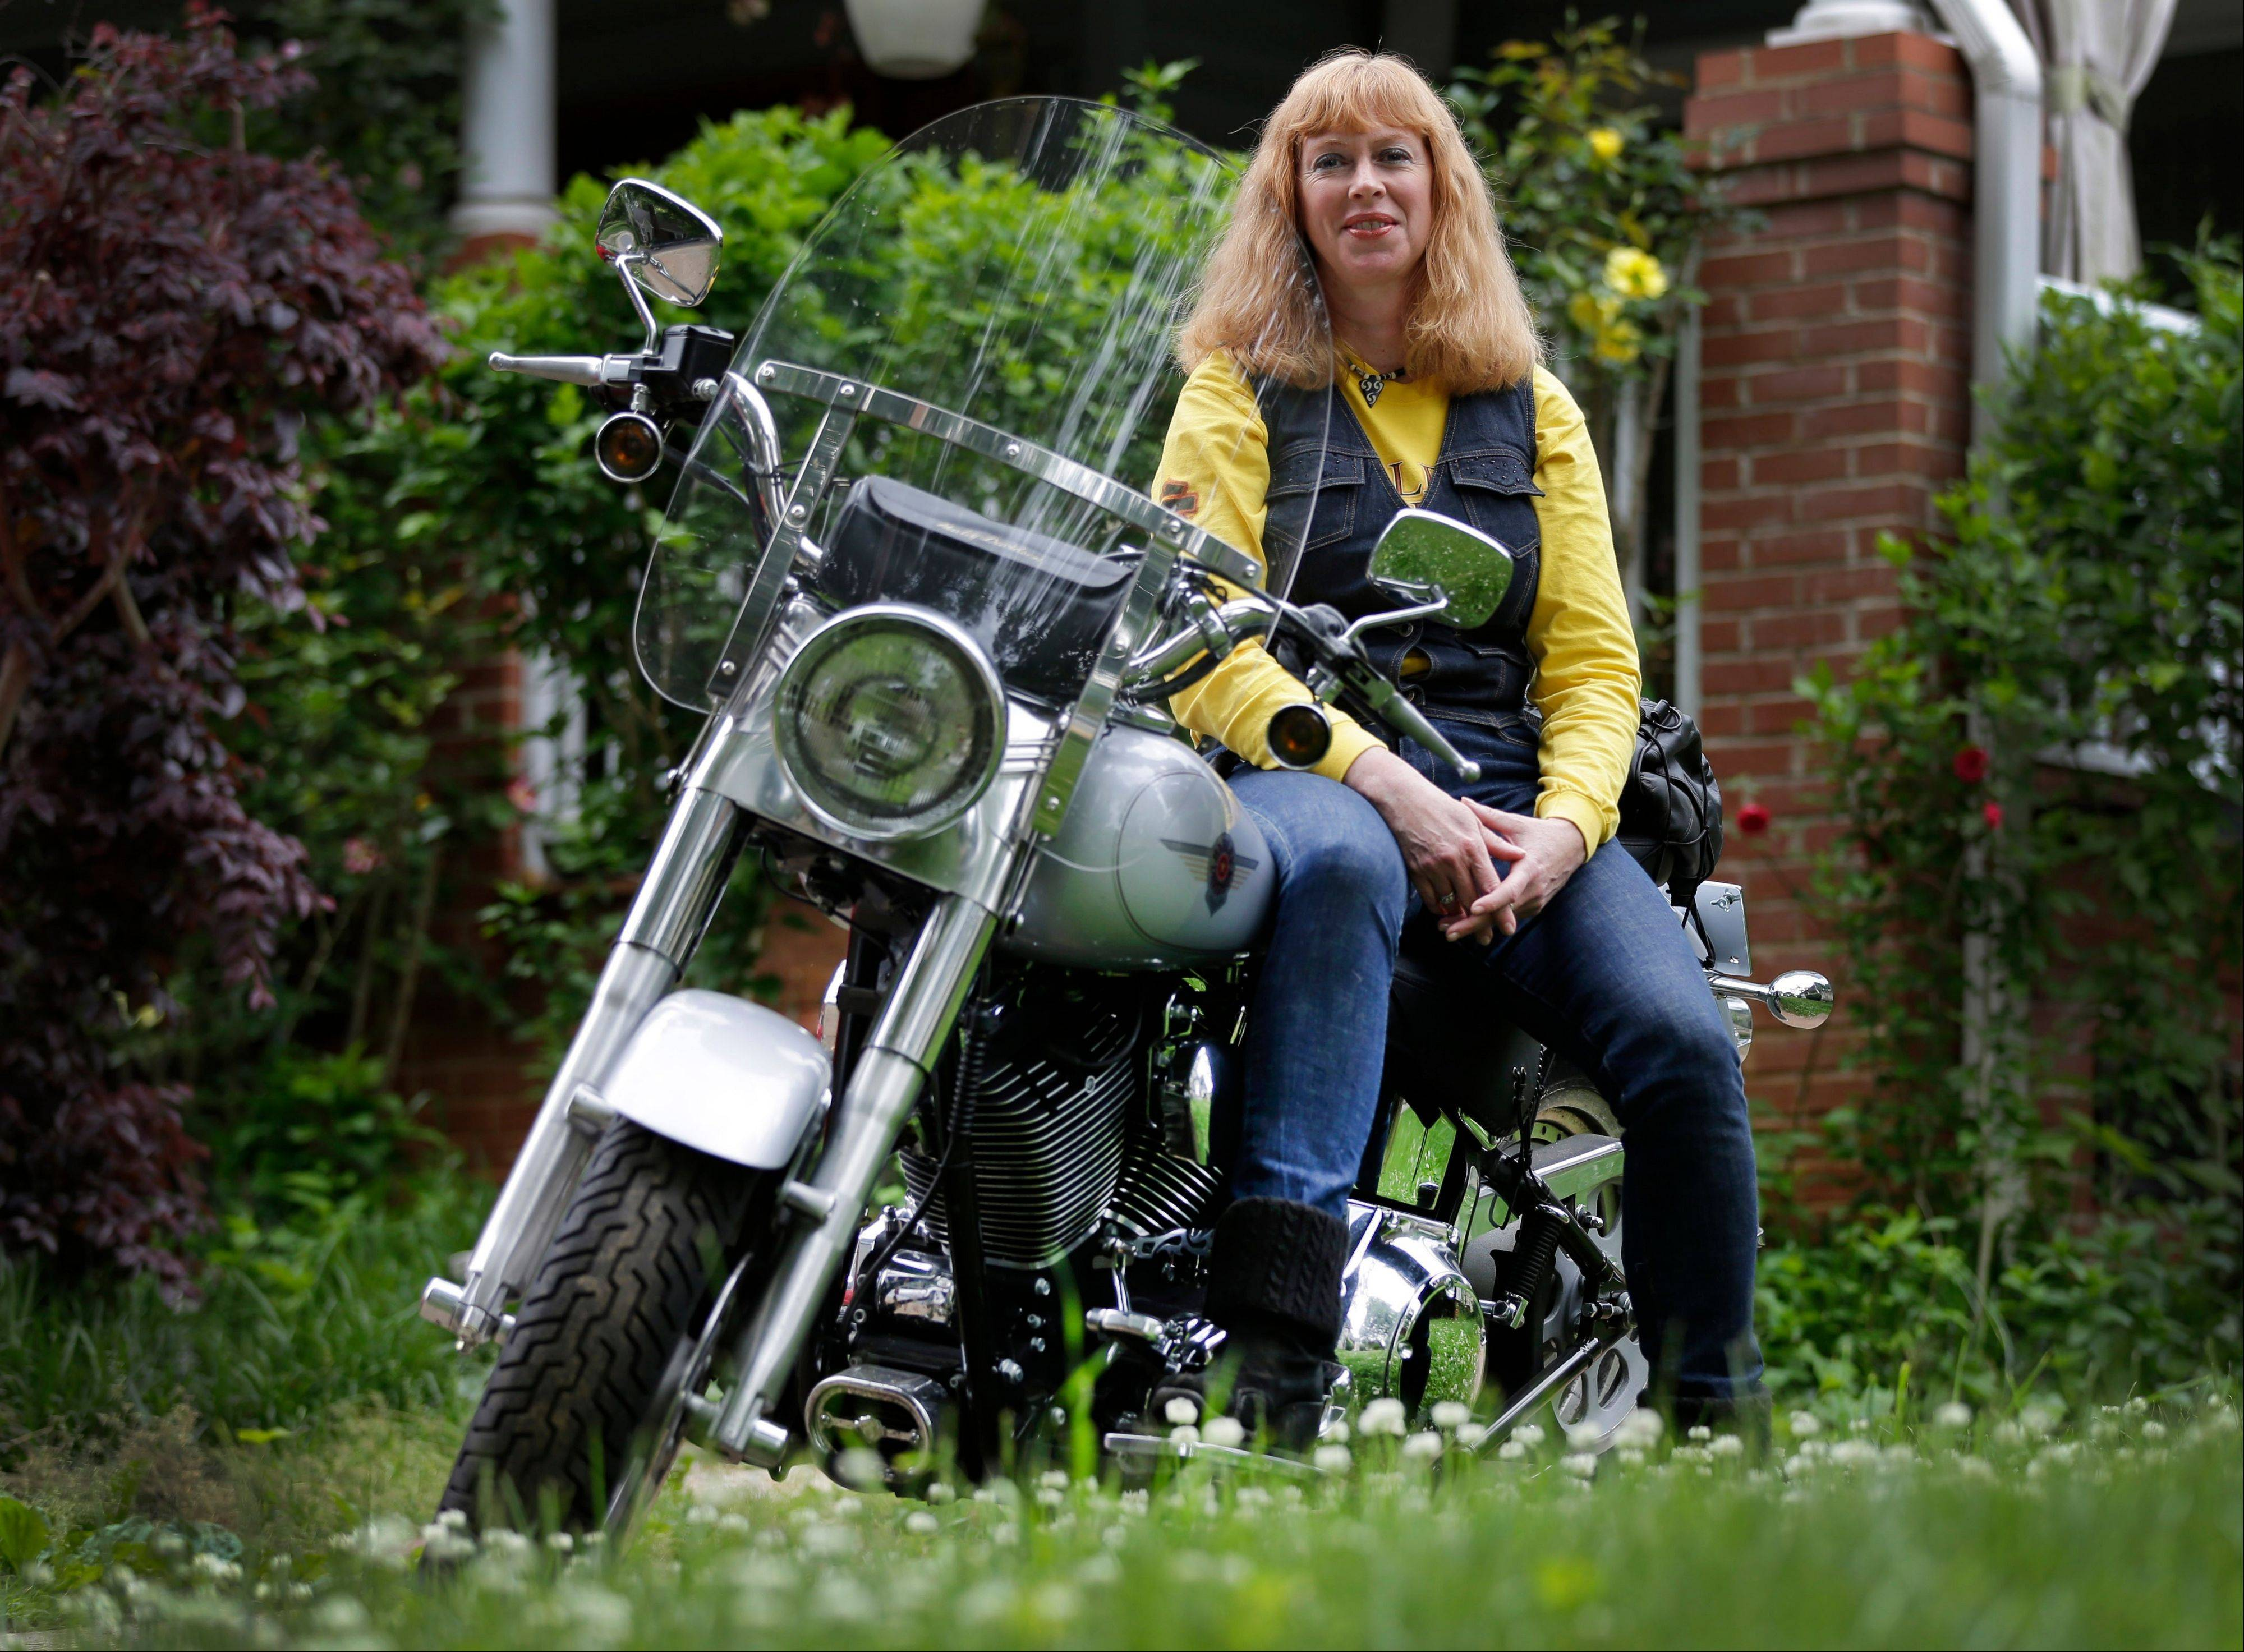 Crystal Swift poses on her Fat Boy Harley-Davidson at her home in Charlotte, N.C. Harley is the top seller of motorcycles in its class in the U.S. and leads in sales among women, minorities and younger adults as well as the middle-aged men.